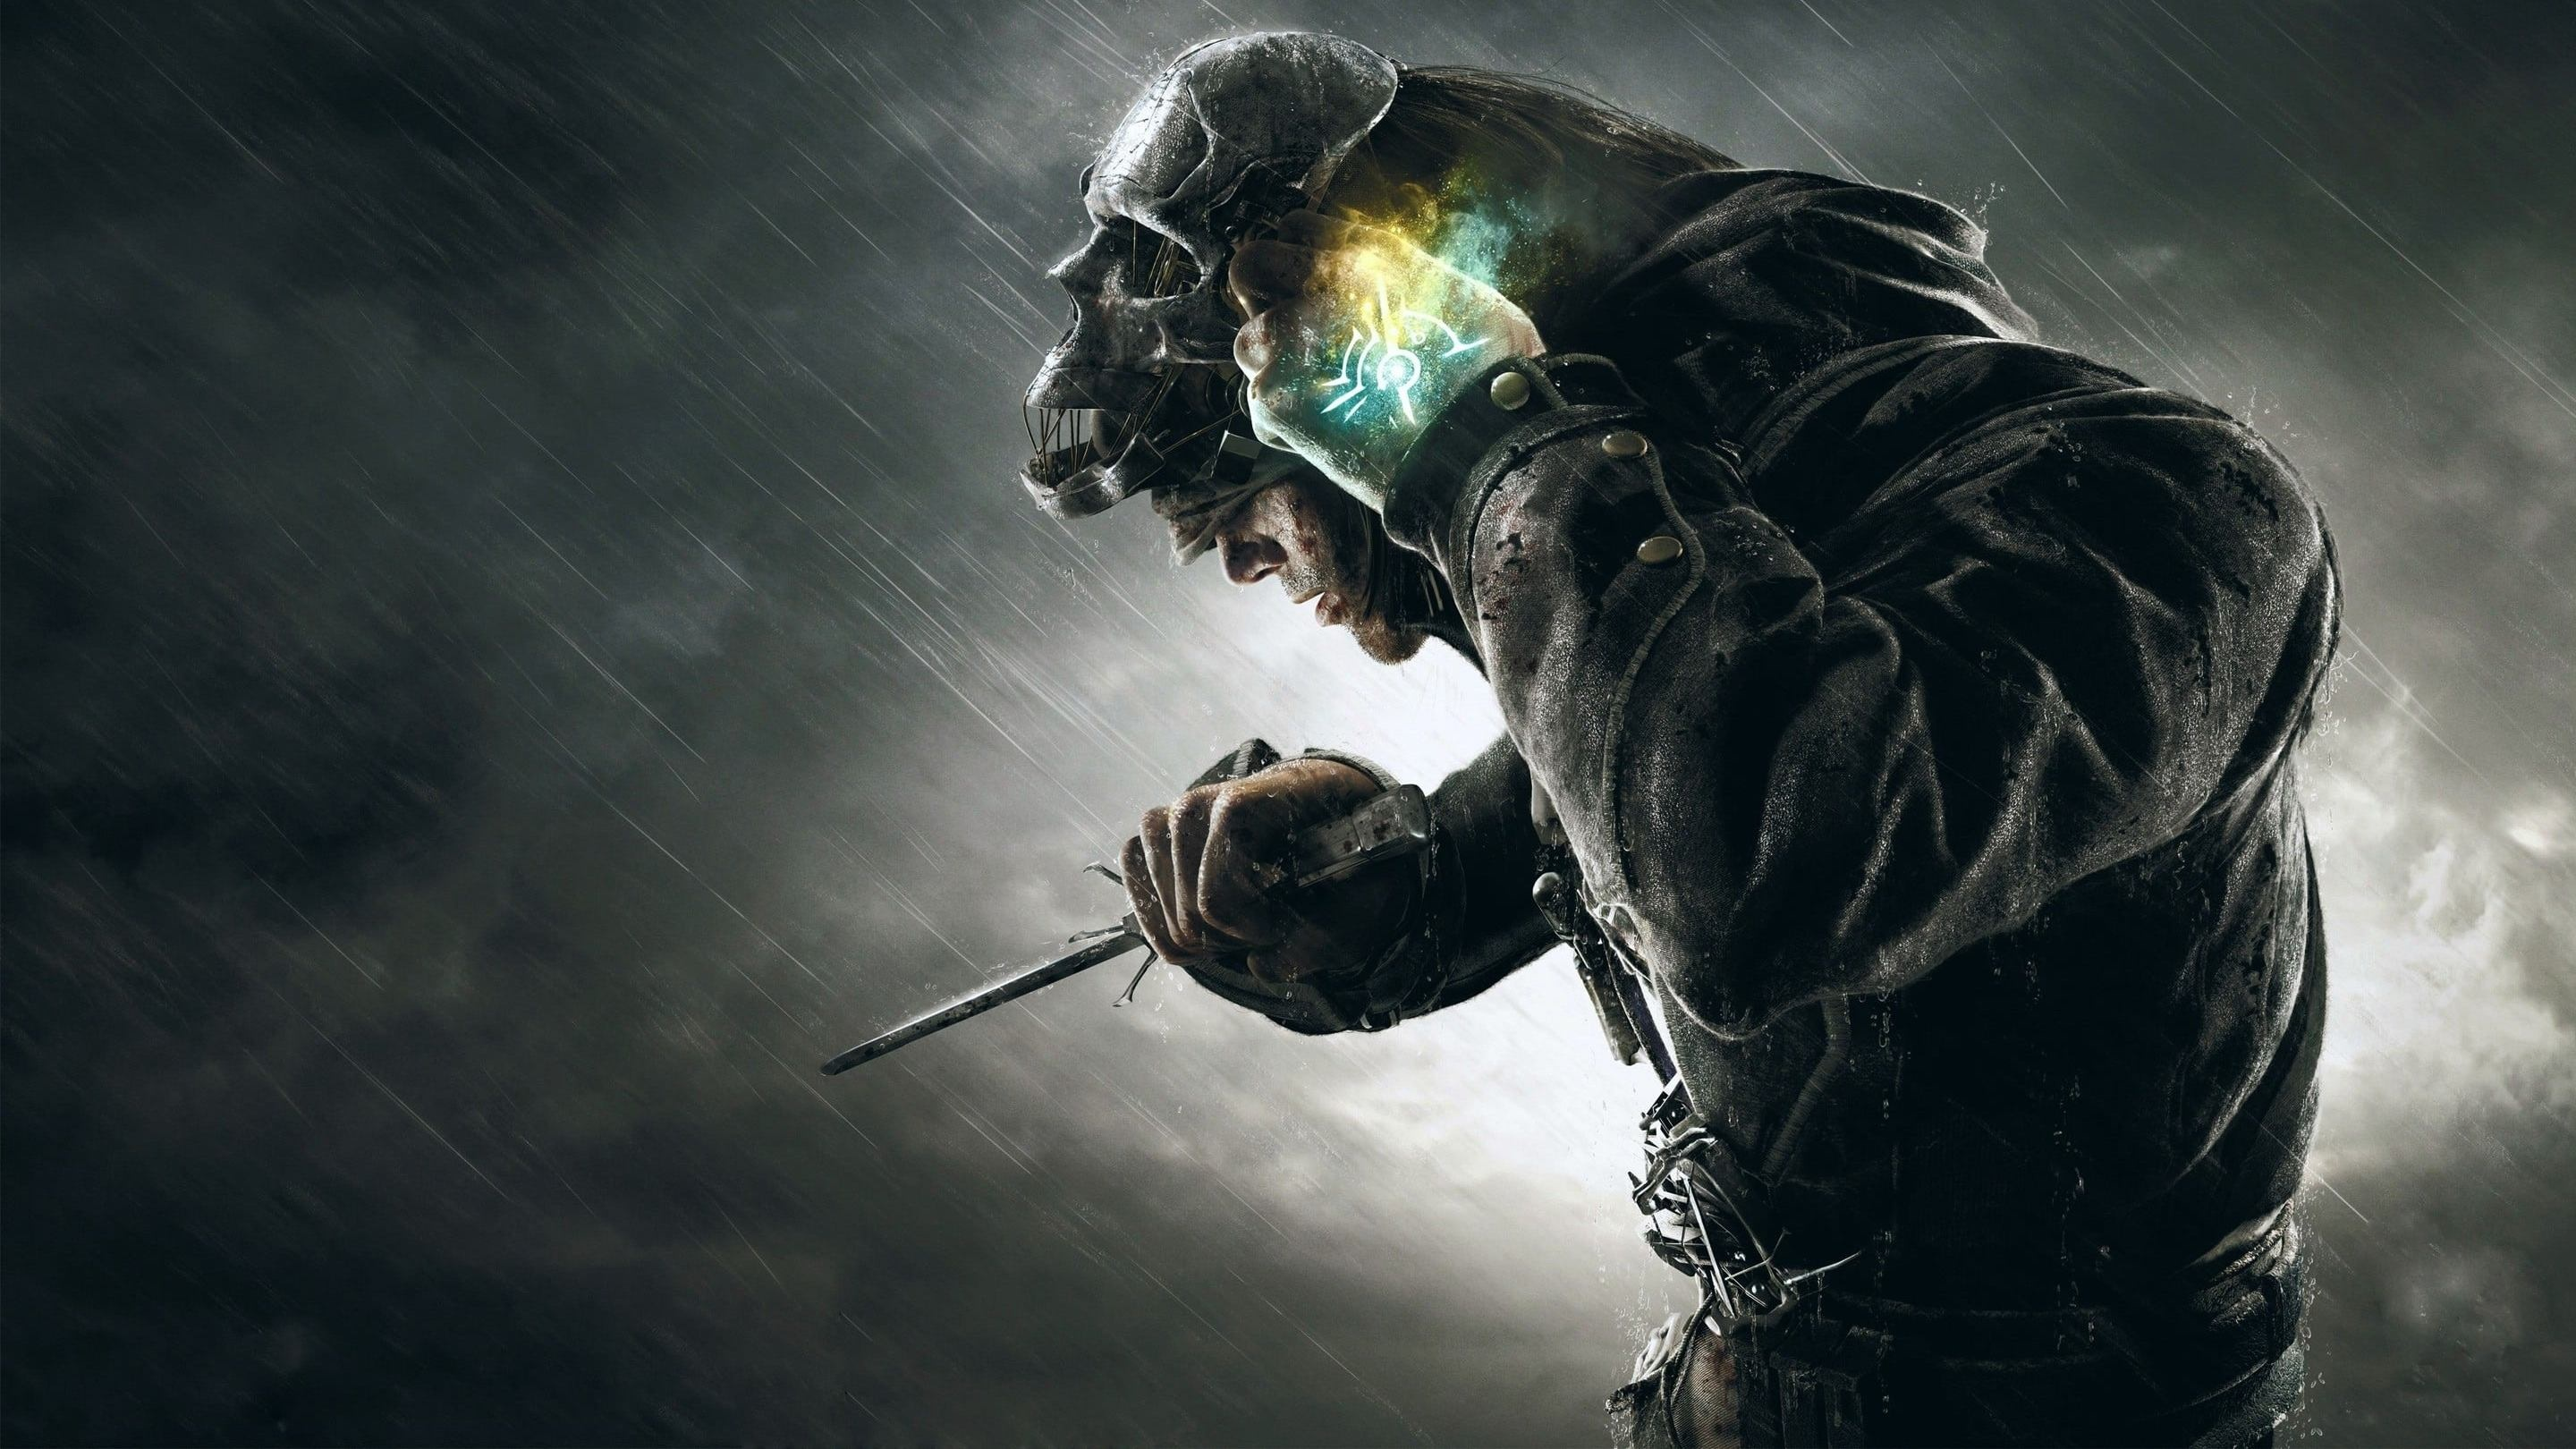 Dishonored 2 Wallpapers 2880x1620 980688